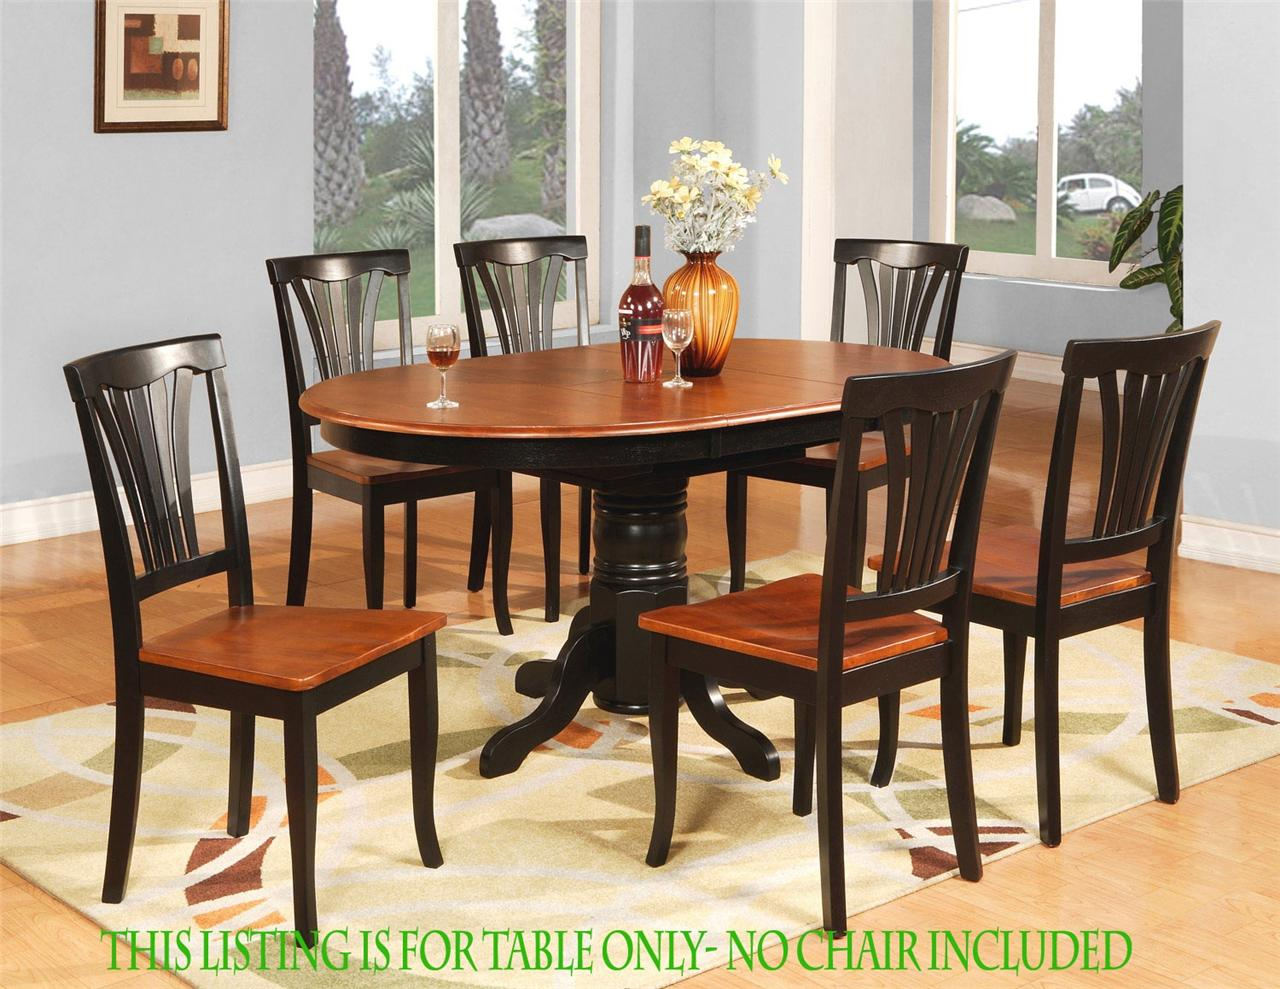 Oval dinette kitchen dining room table only 42 x 60 with for Kitchen set table and chairs